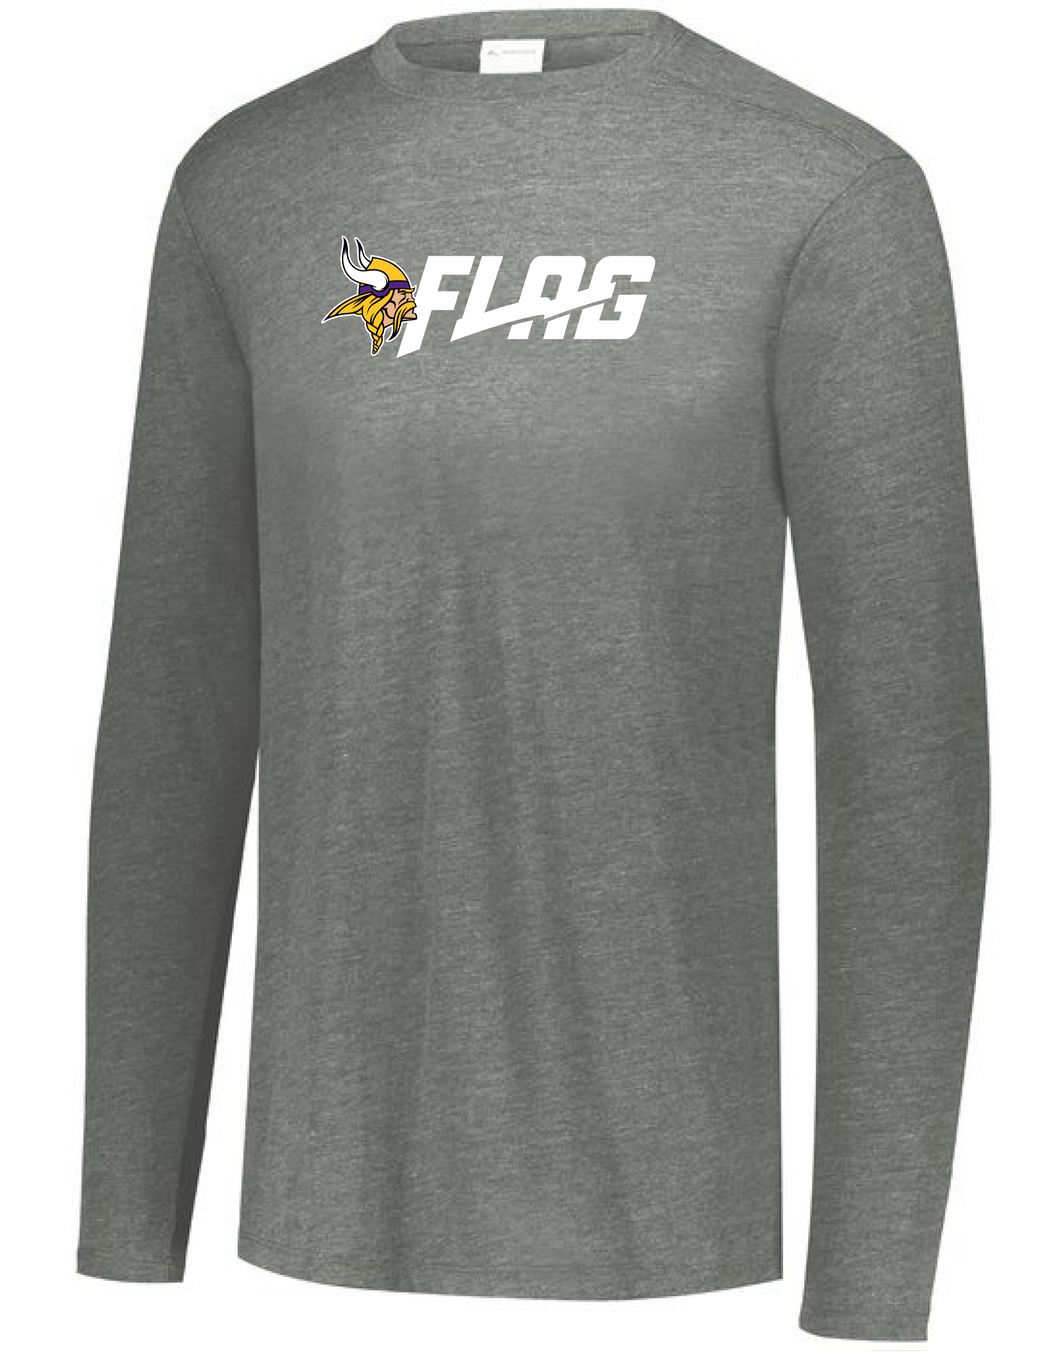 Long Sleeve Tri Blend - Adult - Minnesota Vikings